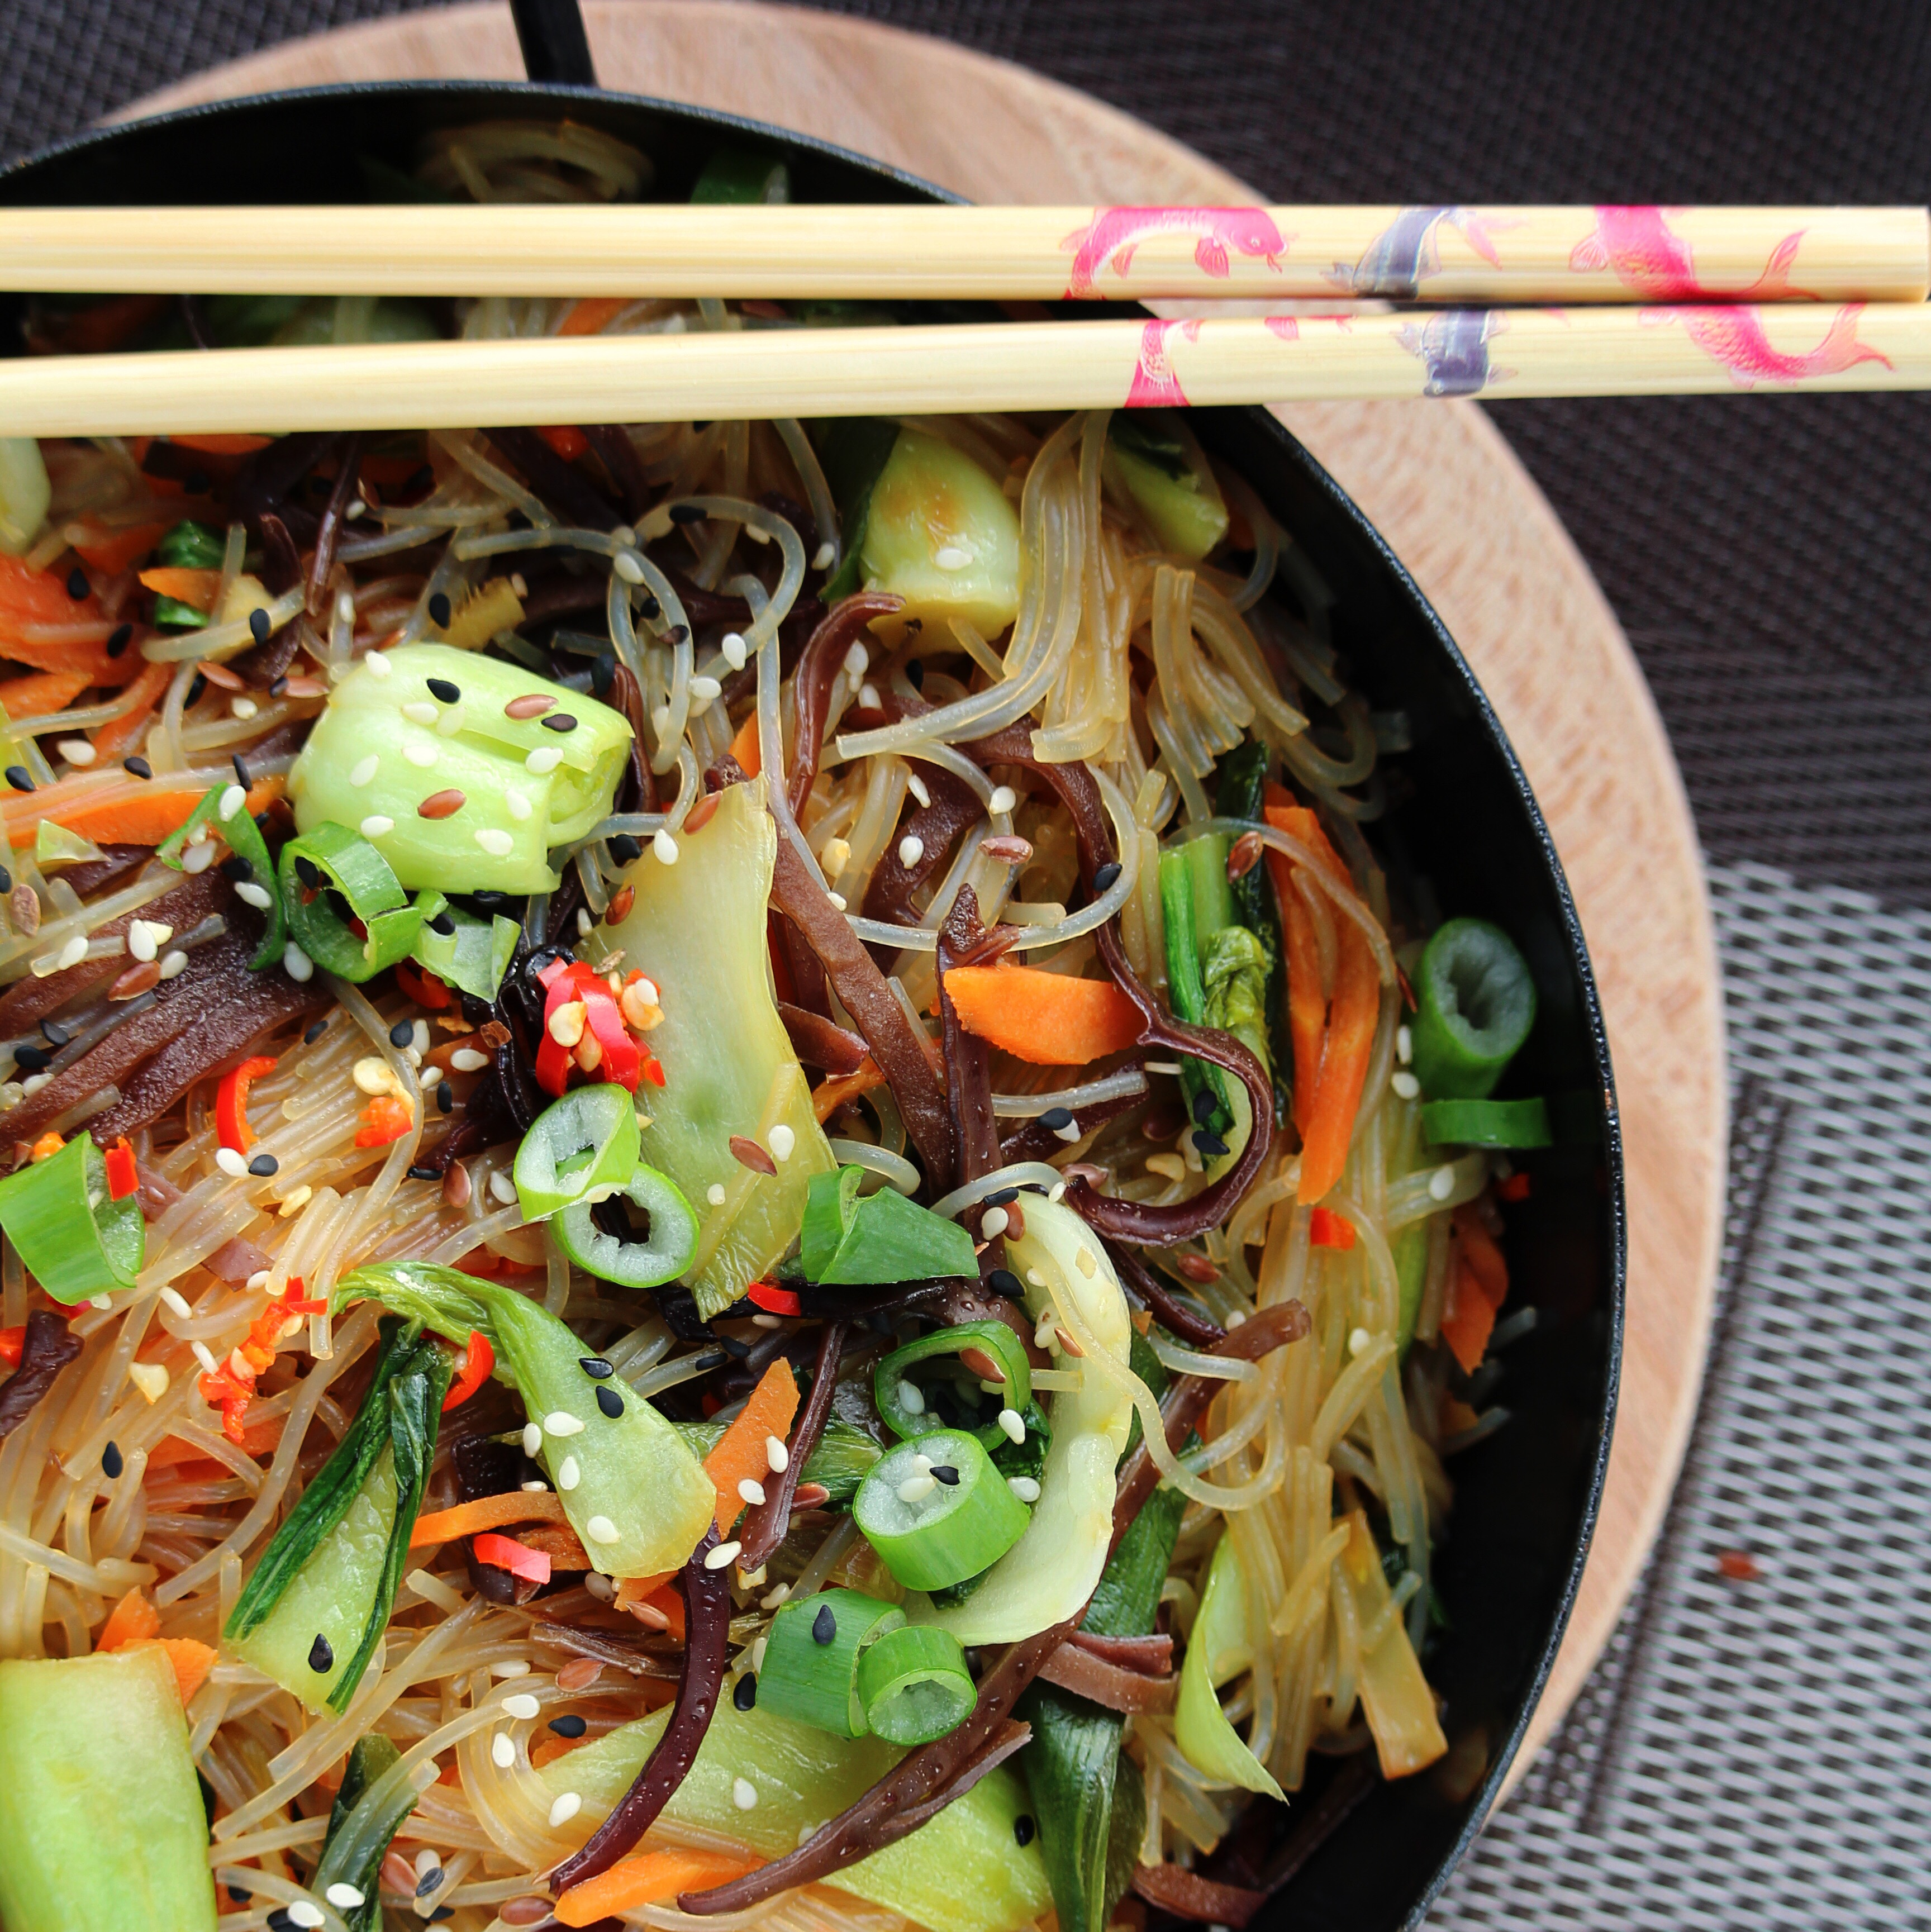 """Traditionally served cold, this vegan Korean dish is packed with sweet potato noodles (dangmyeon) and crunchy vegetables, all tossed in a sweet sesame-soy sauce. """"Delicious!"""" says Buckwheat Queen. """"The method works perfectly and the balance of flavors and textures is spot on."""""""